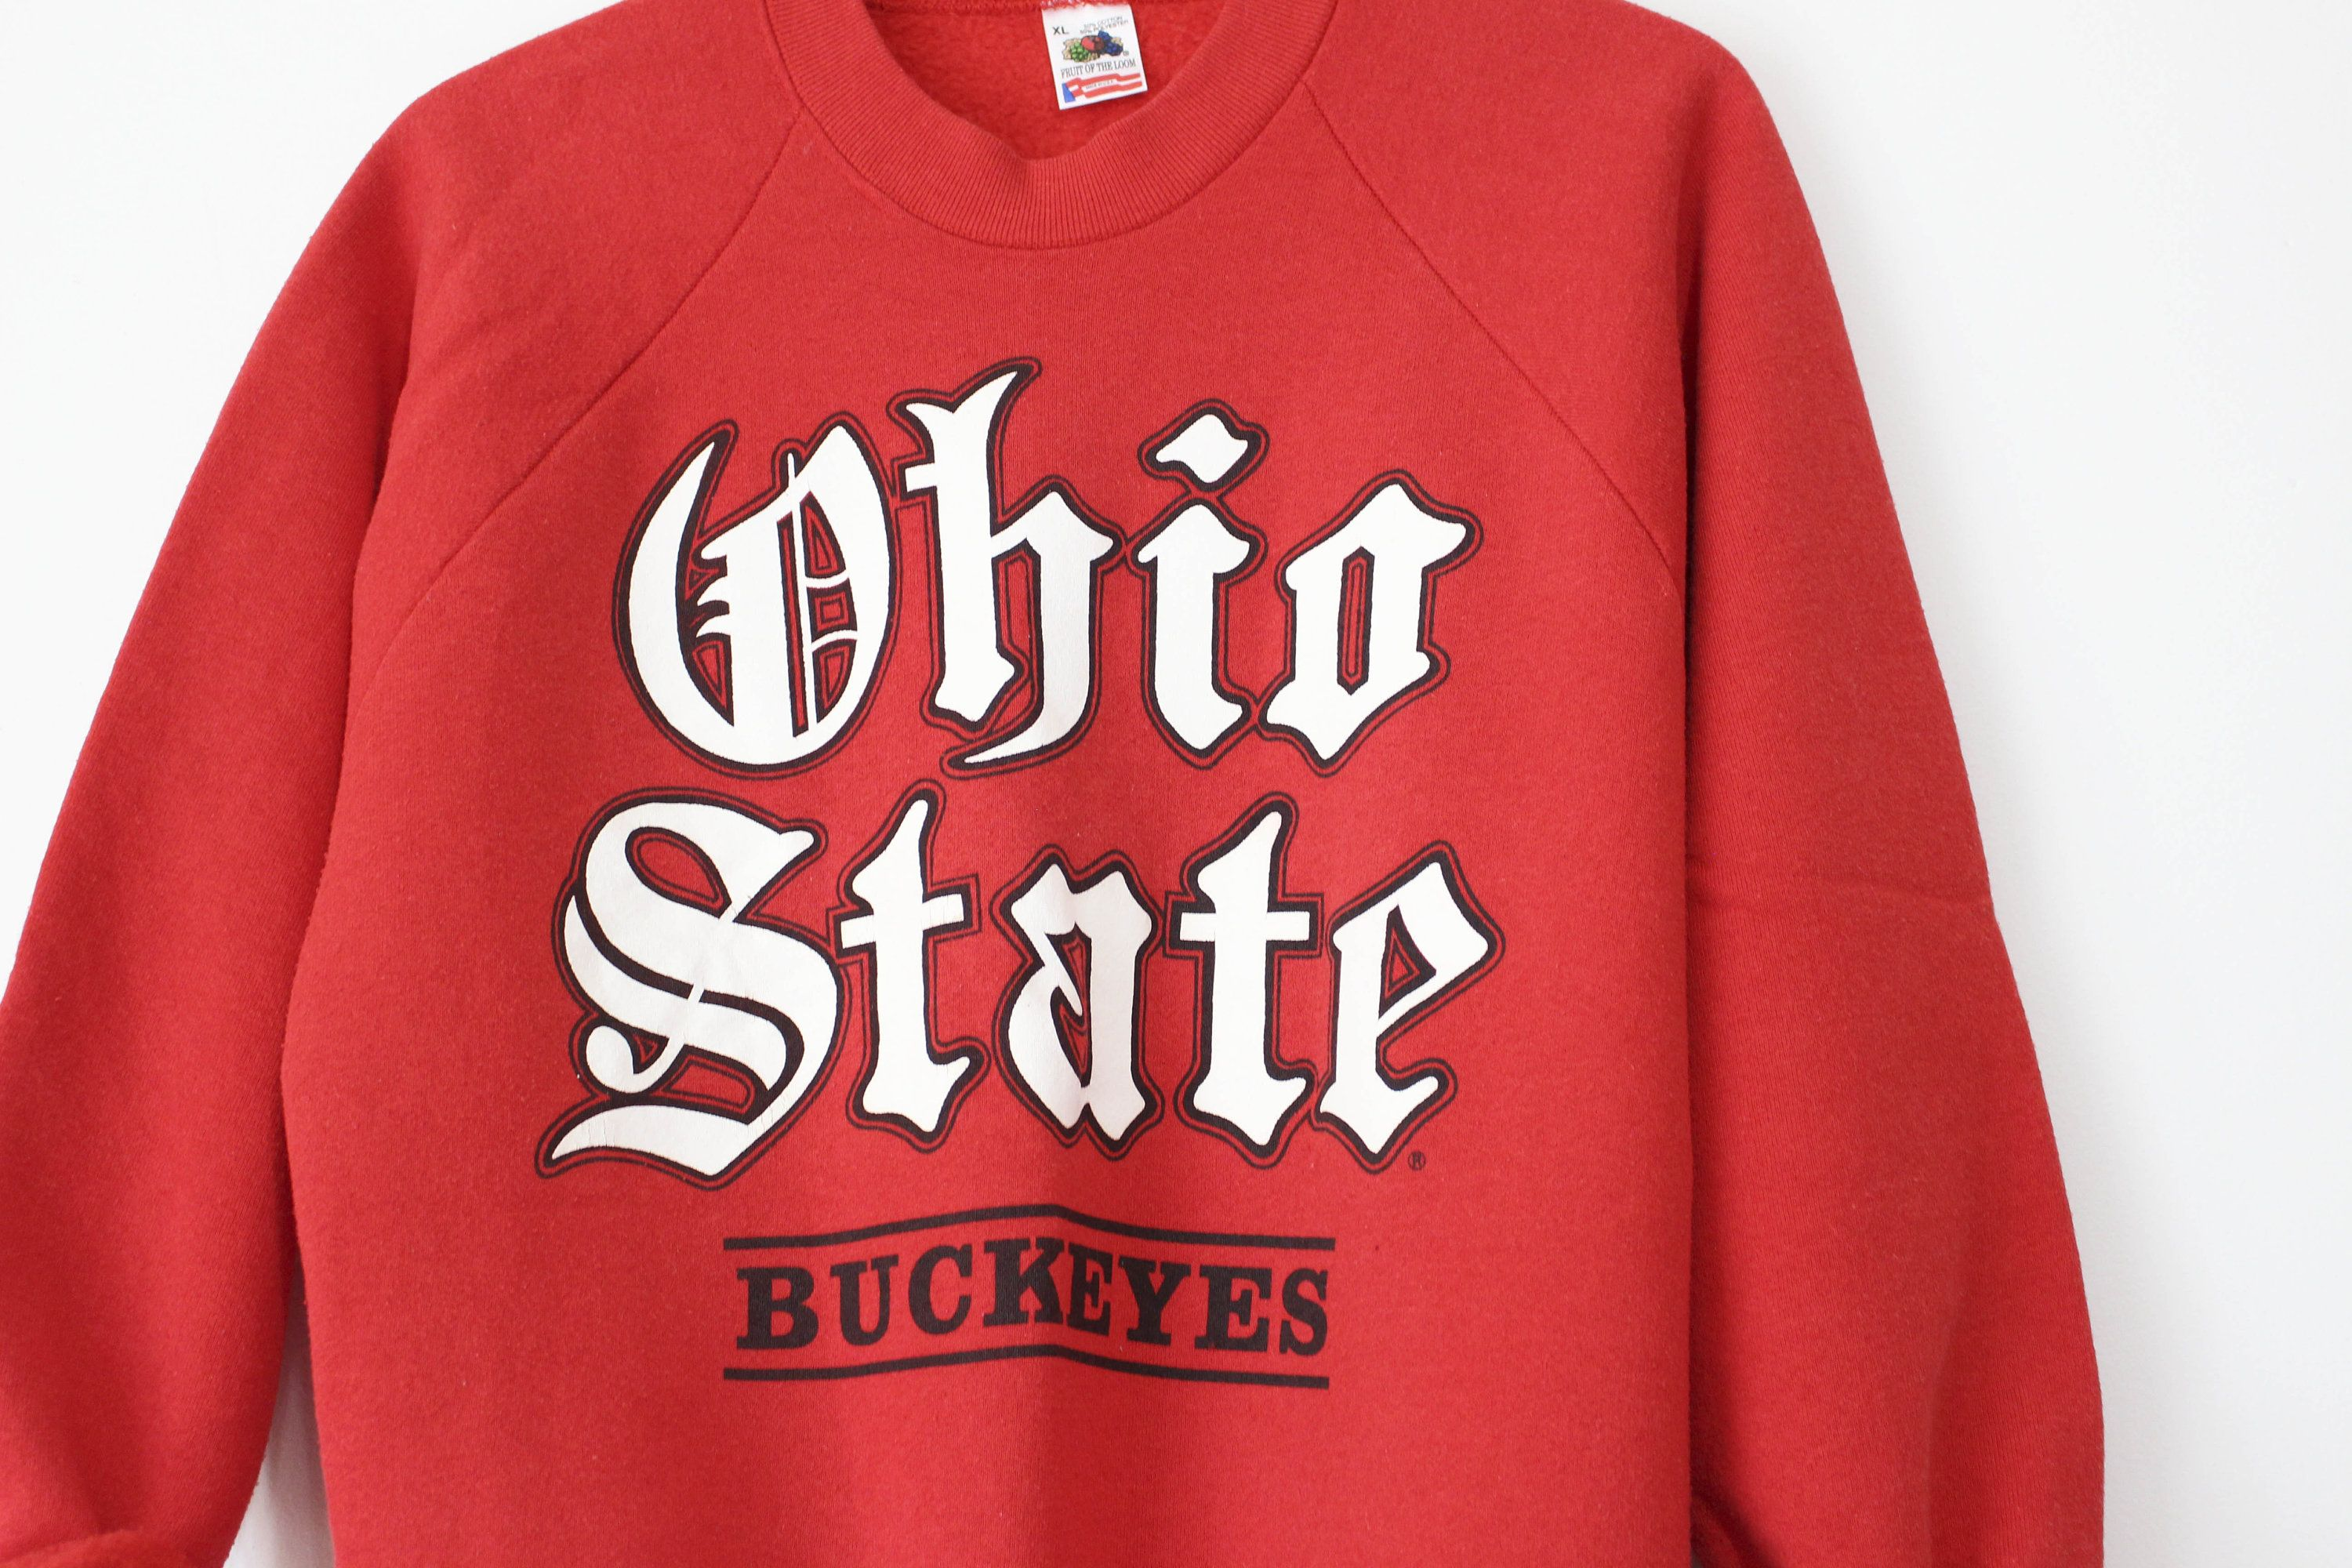 Items similar to Vintage Ohio State Buckeyes Sweatshirt on Etsy